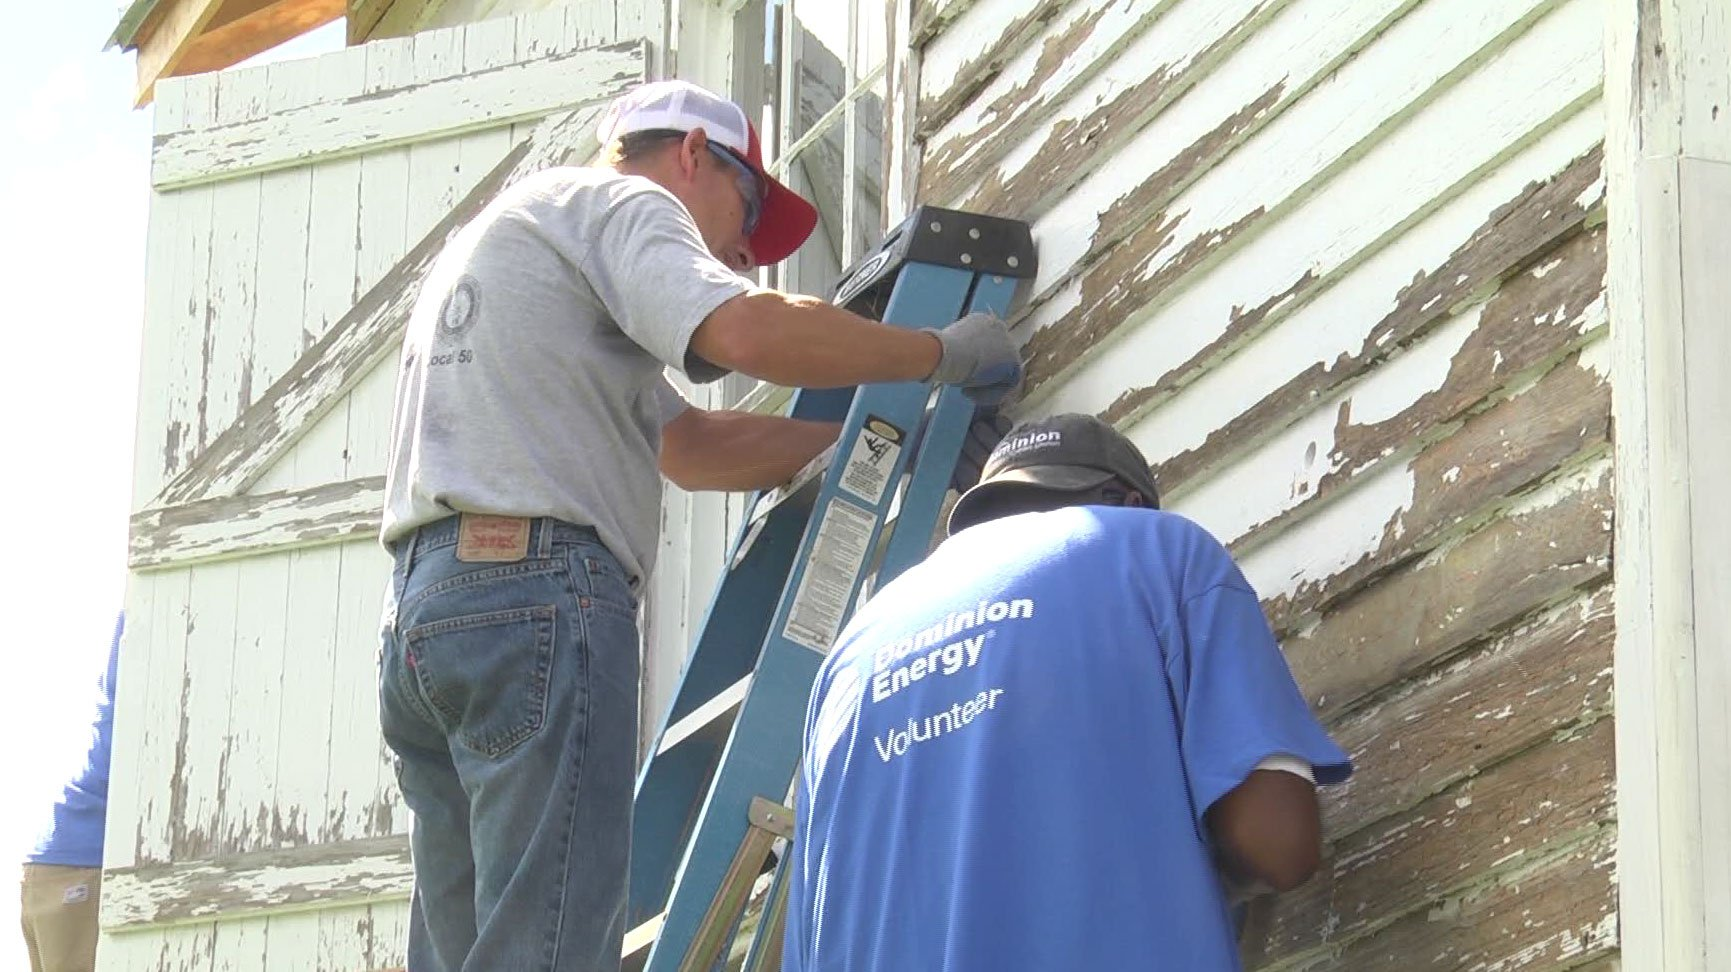 Volunteers with Dominion Energy